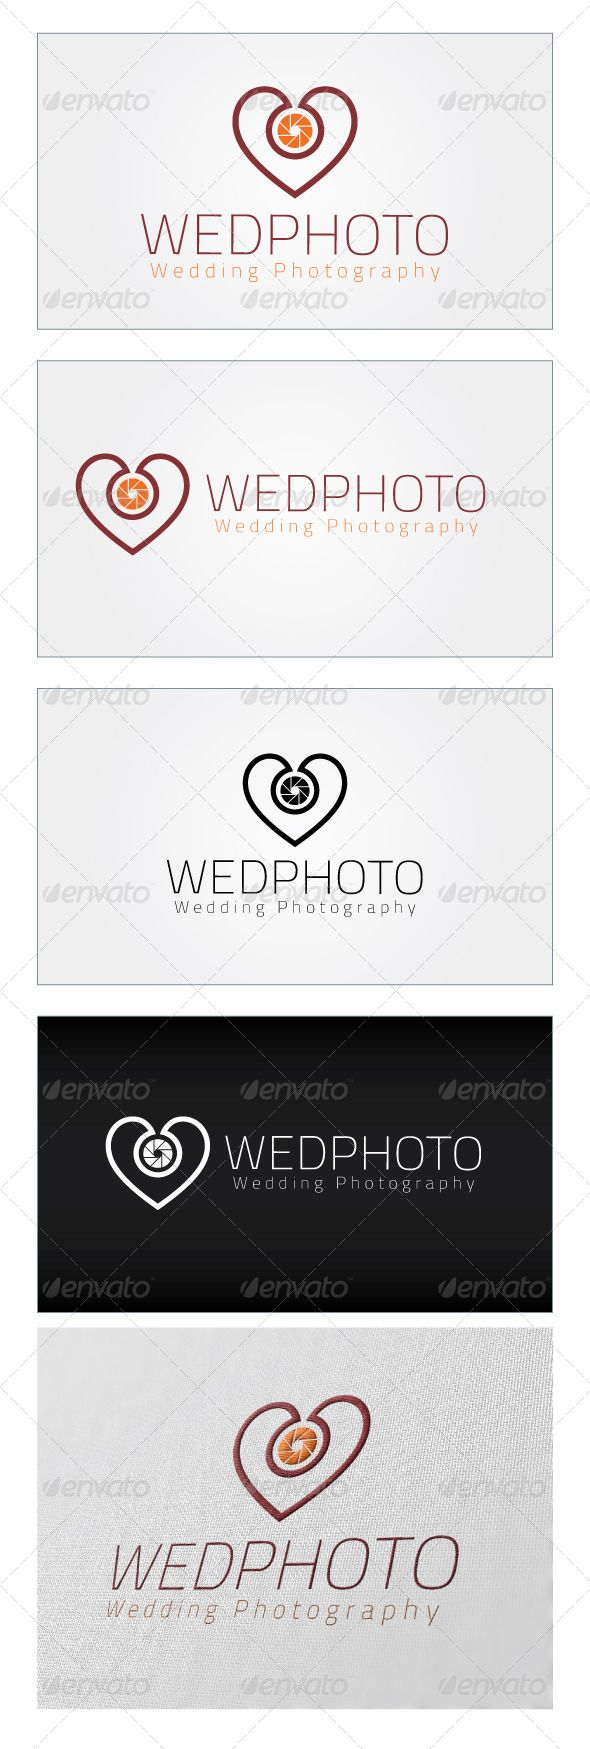 Wedphoto Logo Template GraphicRiver Re sizable Vector EPS